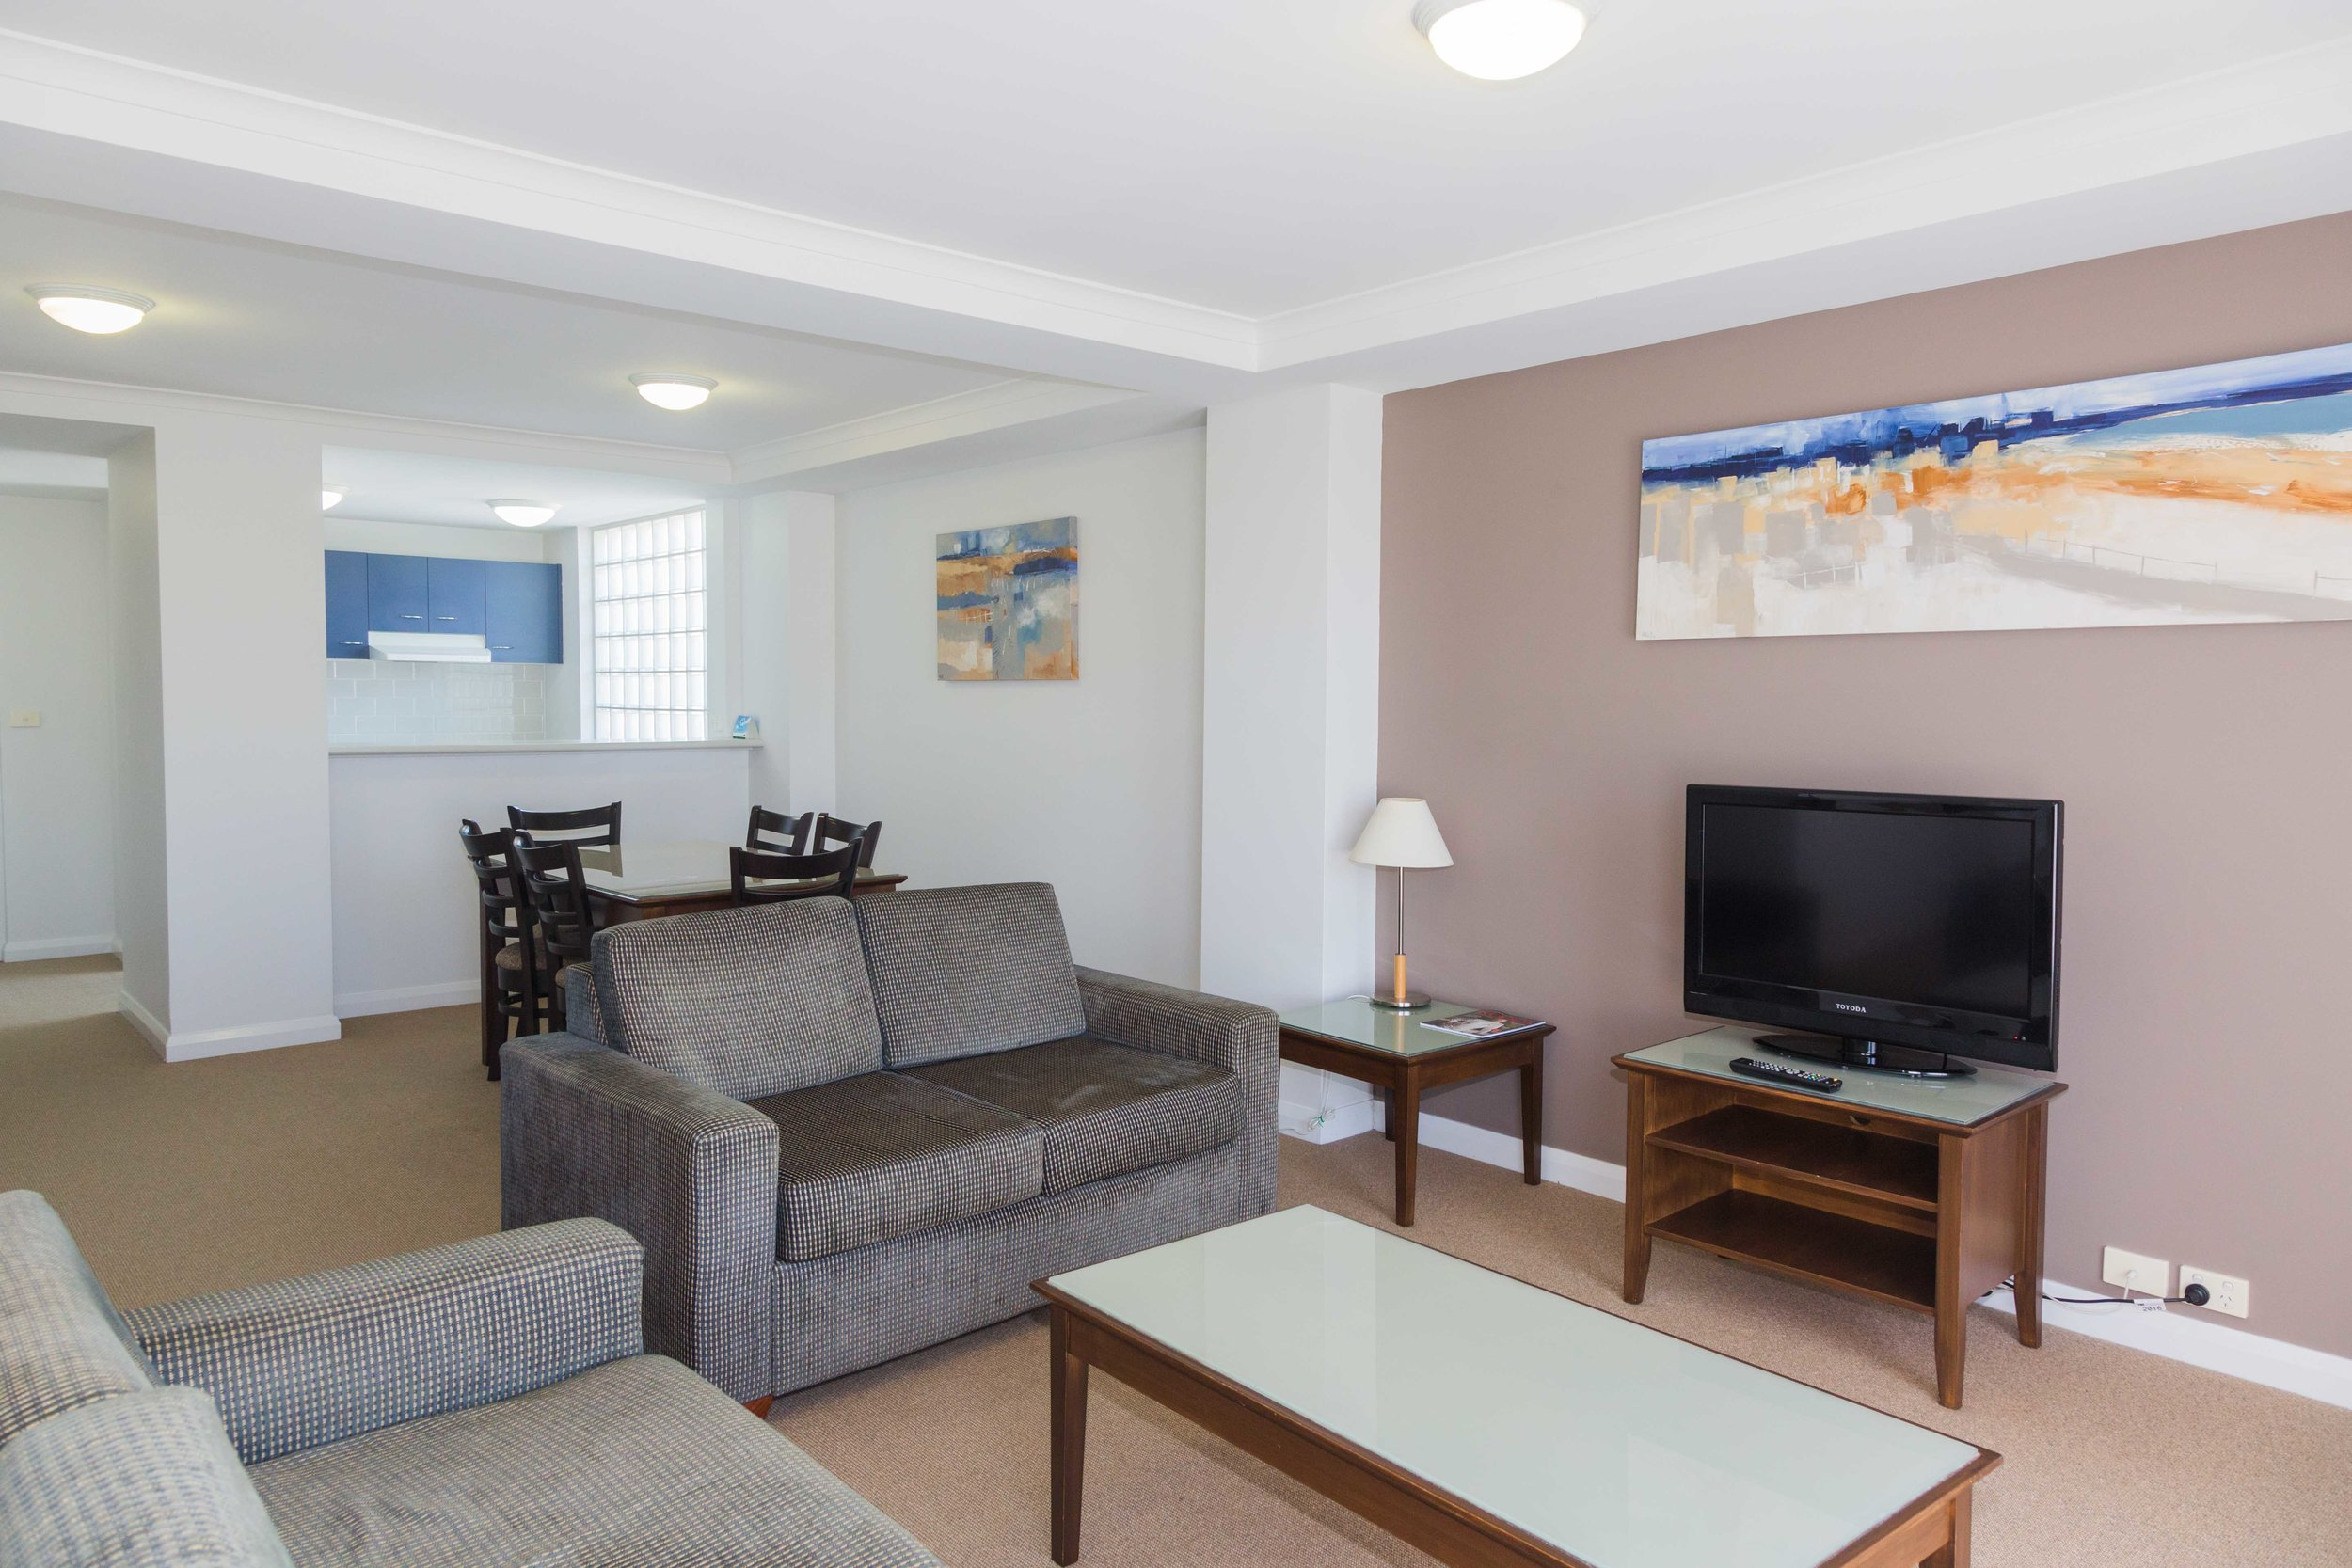 Newcastle Family Comfort - Quest Apartments Newcastle 2 nights accommodation and return flights.ex Ballina/Canberra/Dubbo/SydneyStarting from $529 per person twin share (adult), $198 pp (child)